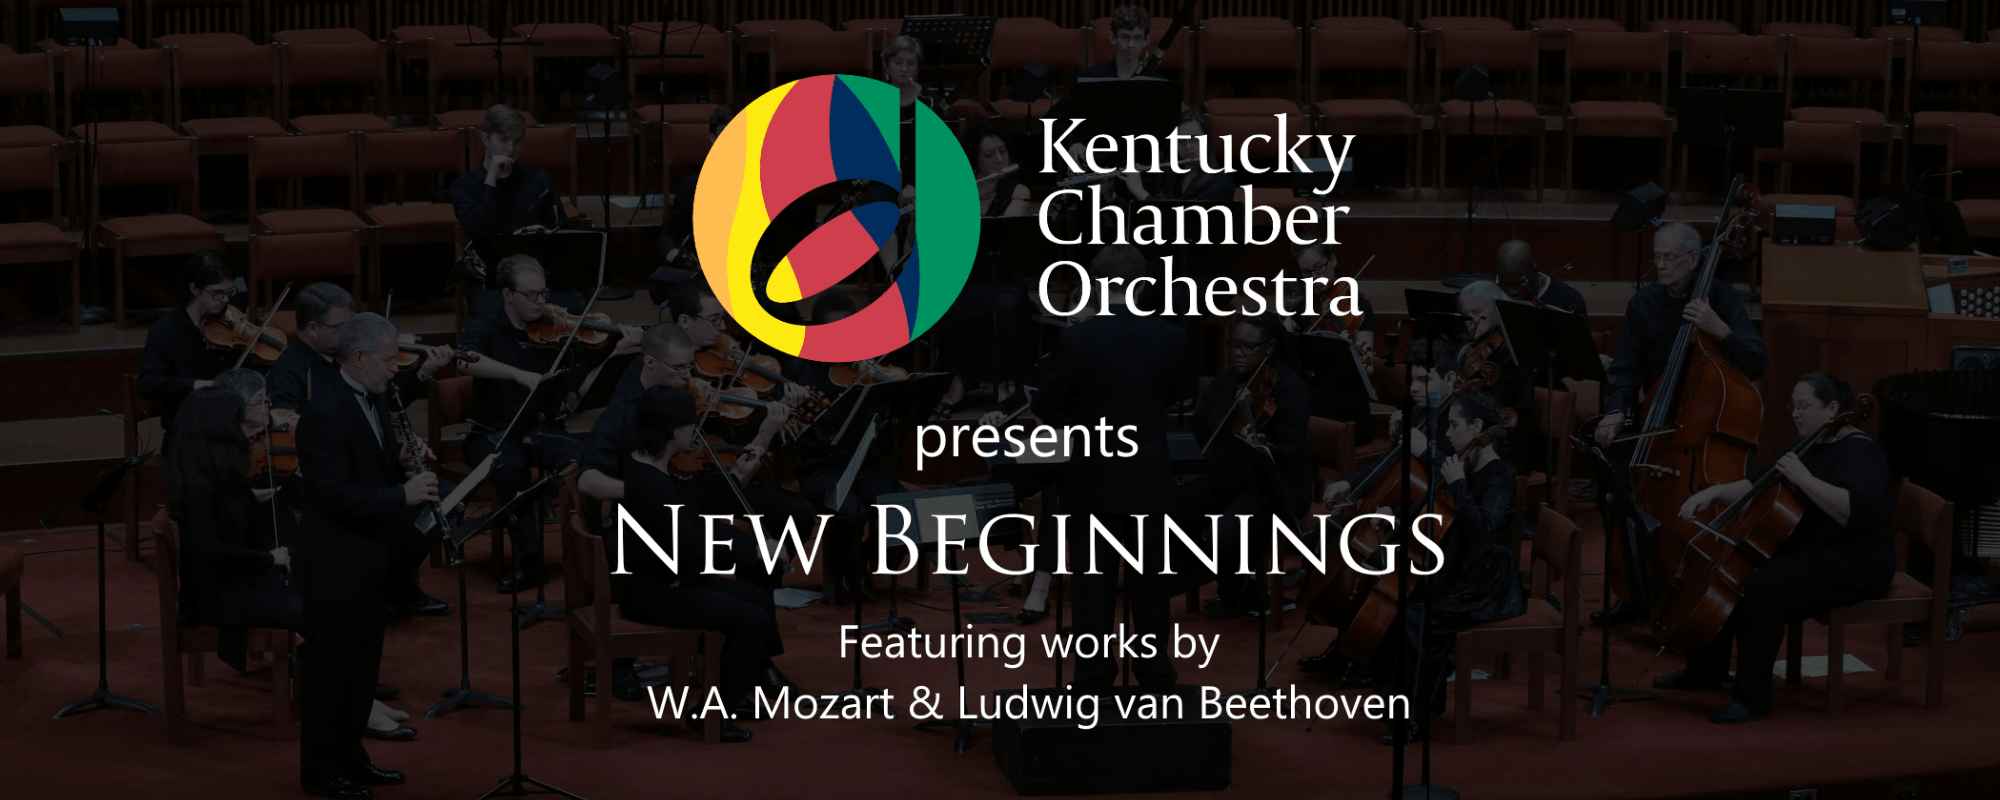 Come Hear Beethoven's 1st Symphony on October 25th!